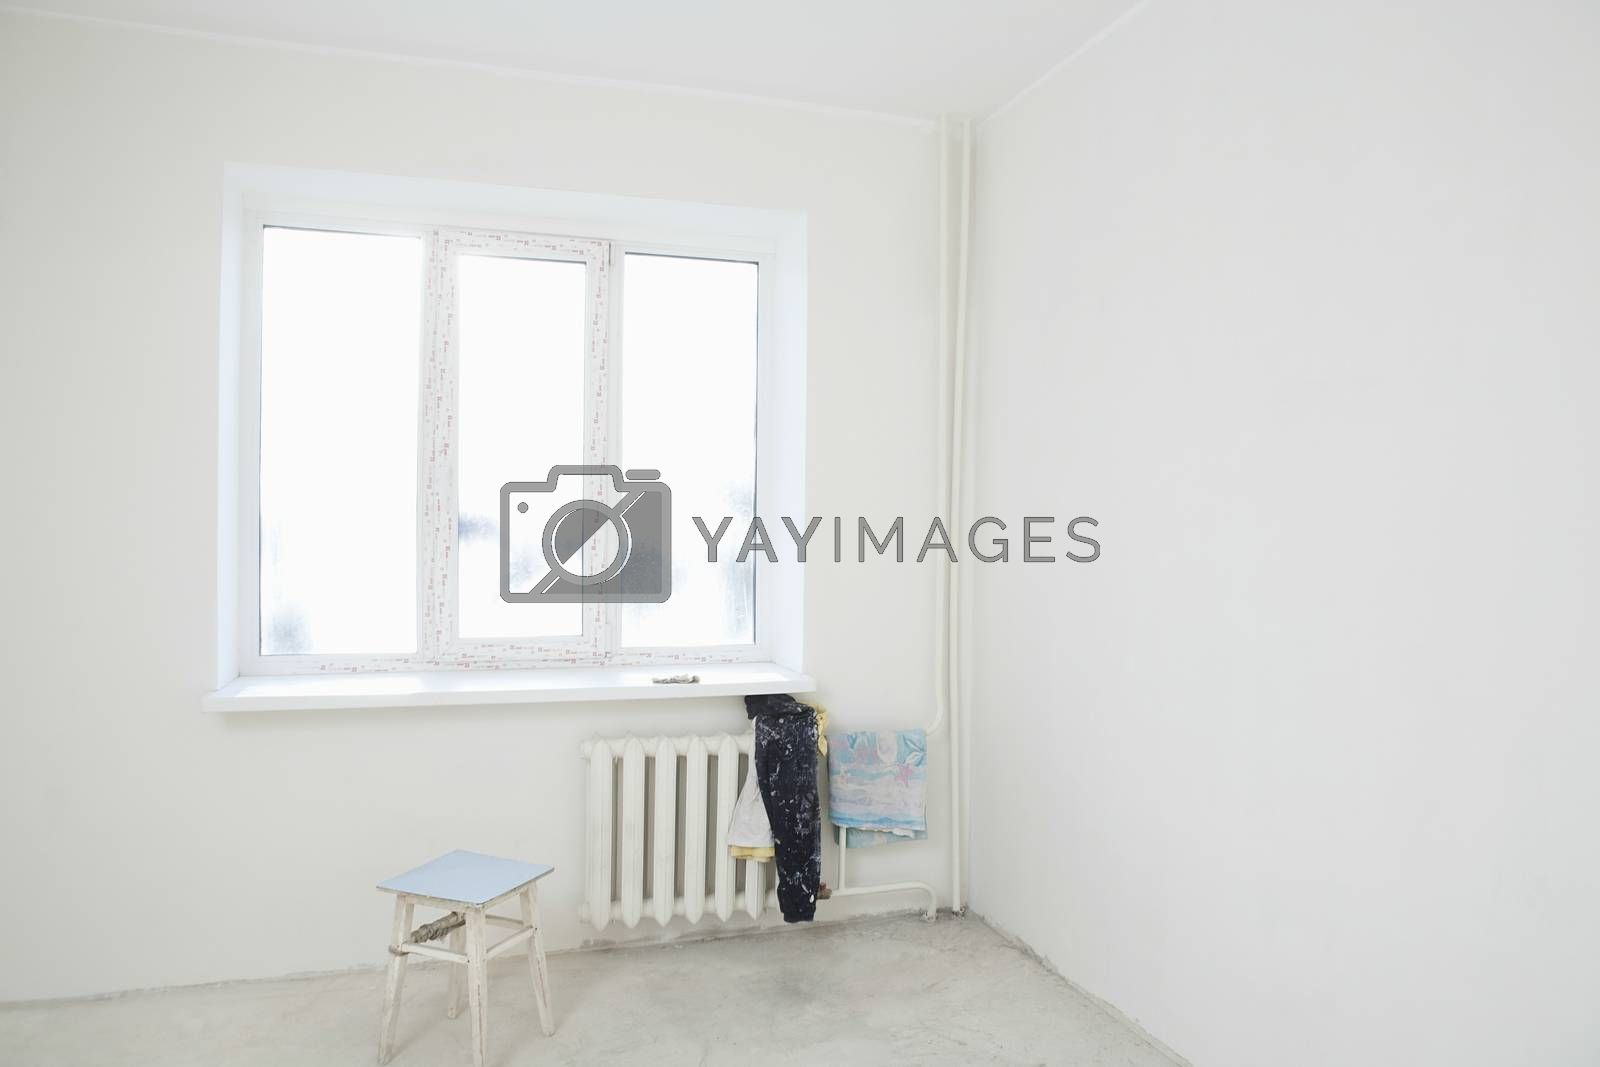 Dirty Clothes On Radiator Under Window Of New Apartment Royalty Free Stock Image Stock Photos Royalty Free Images Vectors Footage Yayimages